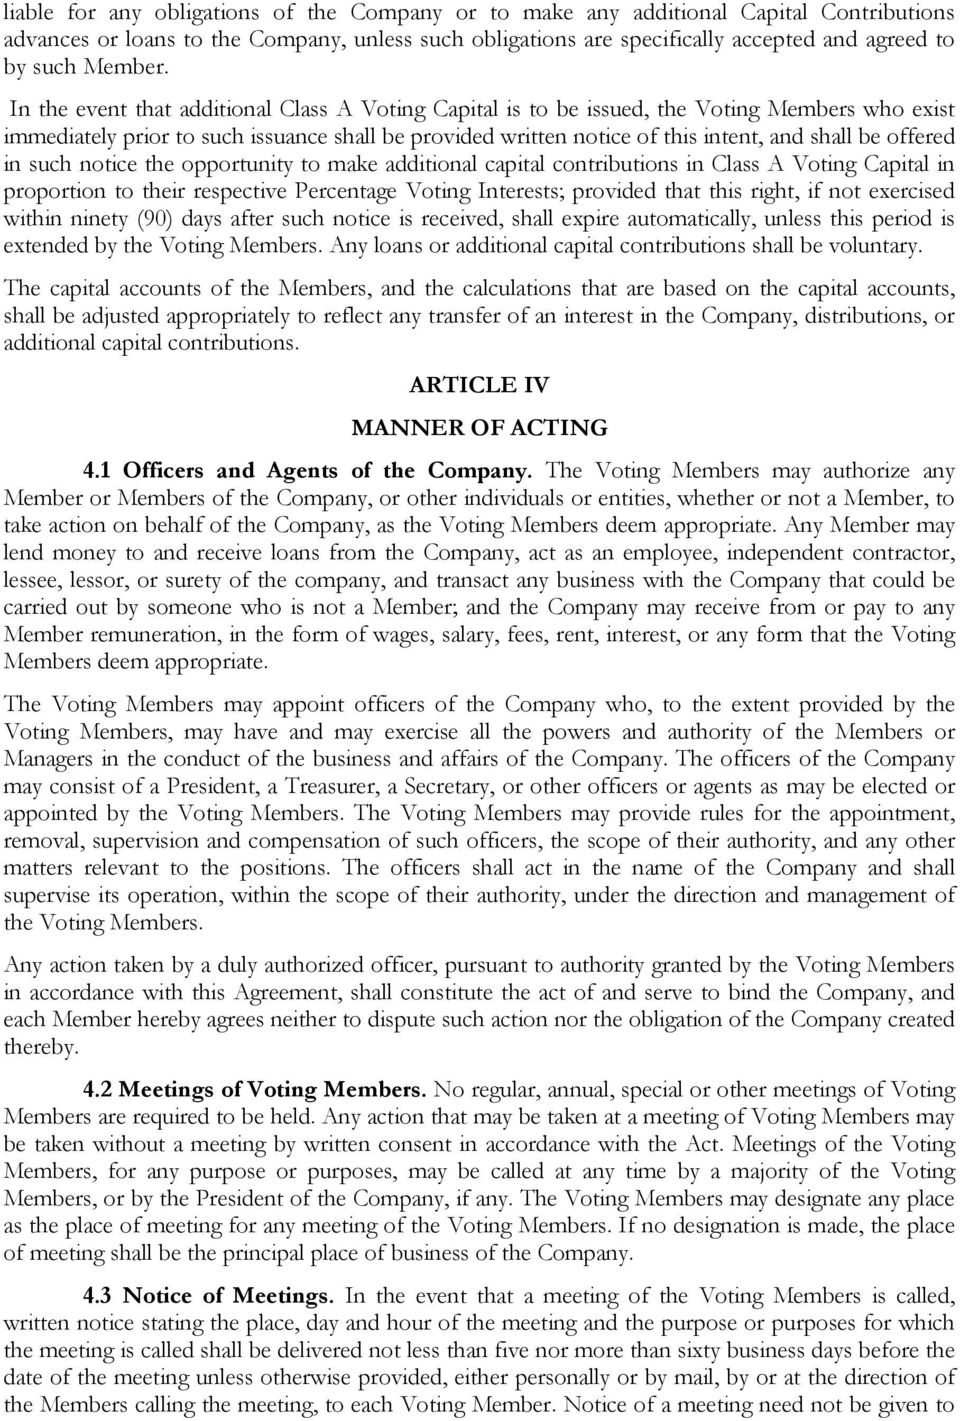 In the event that additional Class A Voting Capital is to be issued, the Voting Members who exist immediately prior to such issuance shall be provided written notice of this intent, and shall be